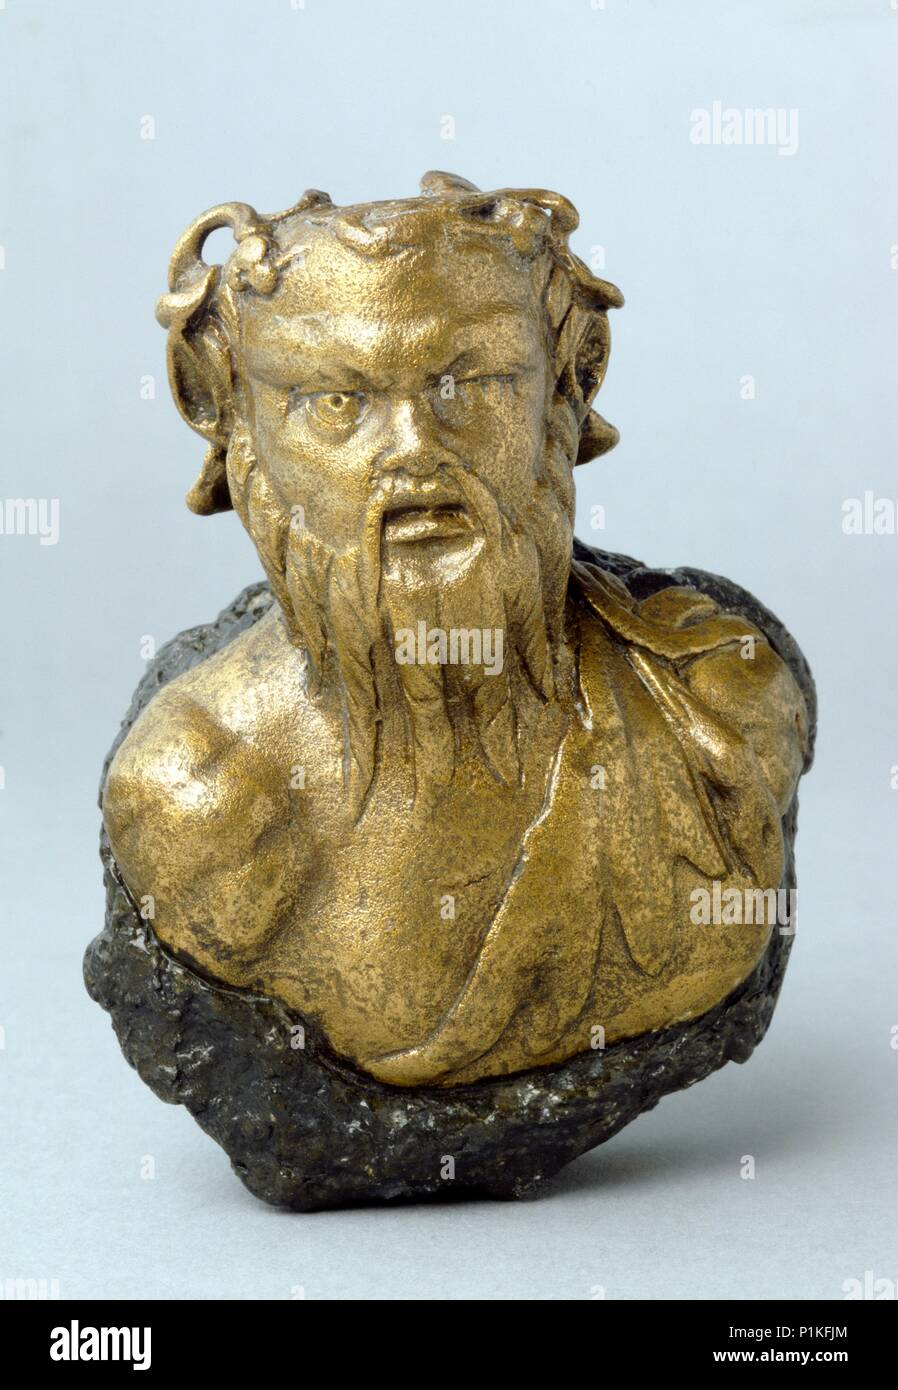 Roman steelyard weight in the form of a bearded satyr, found at Richborough Castle, Kent. - Stock Image